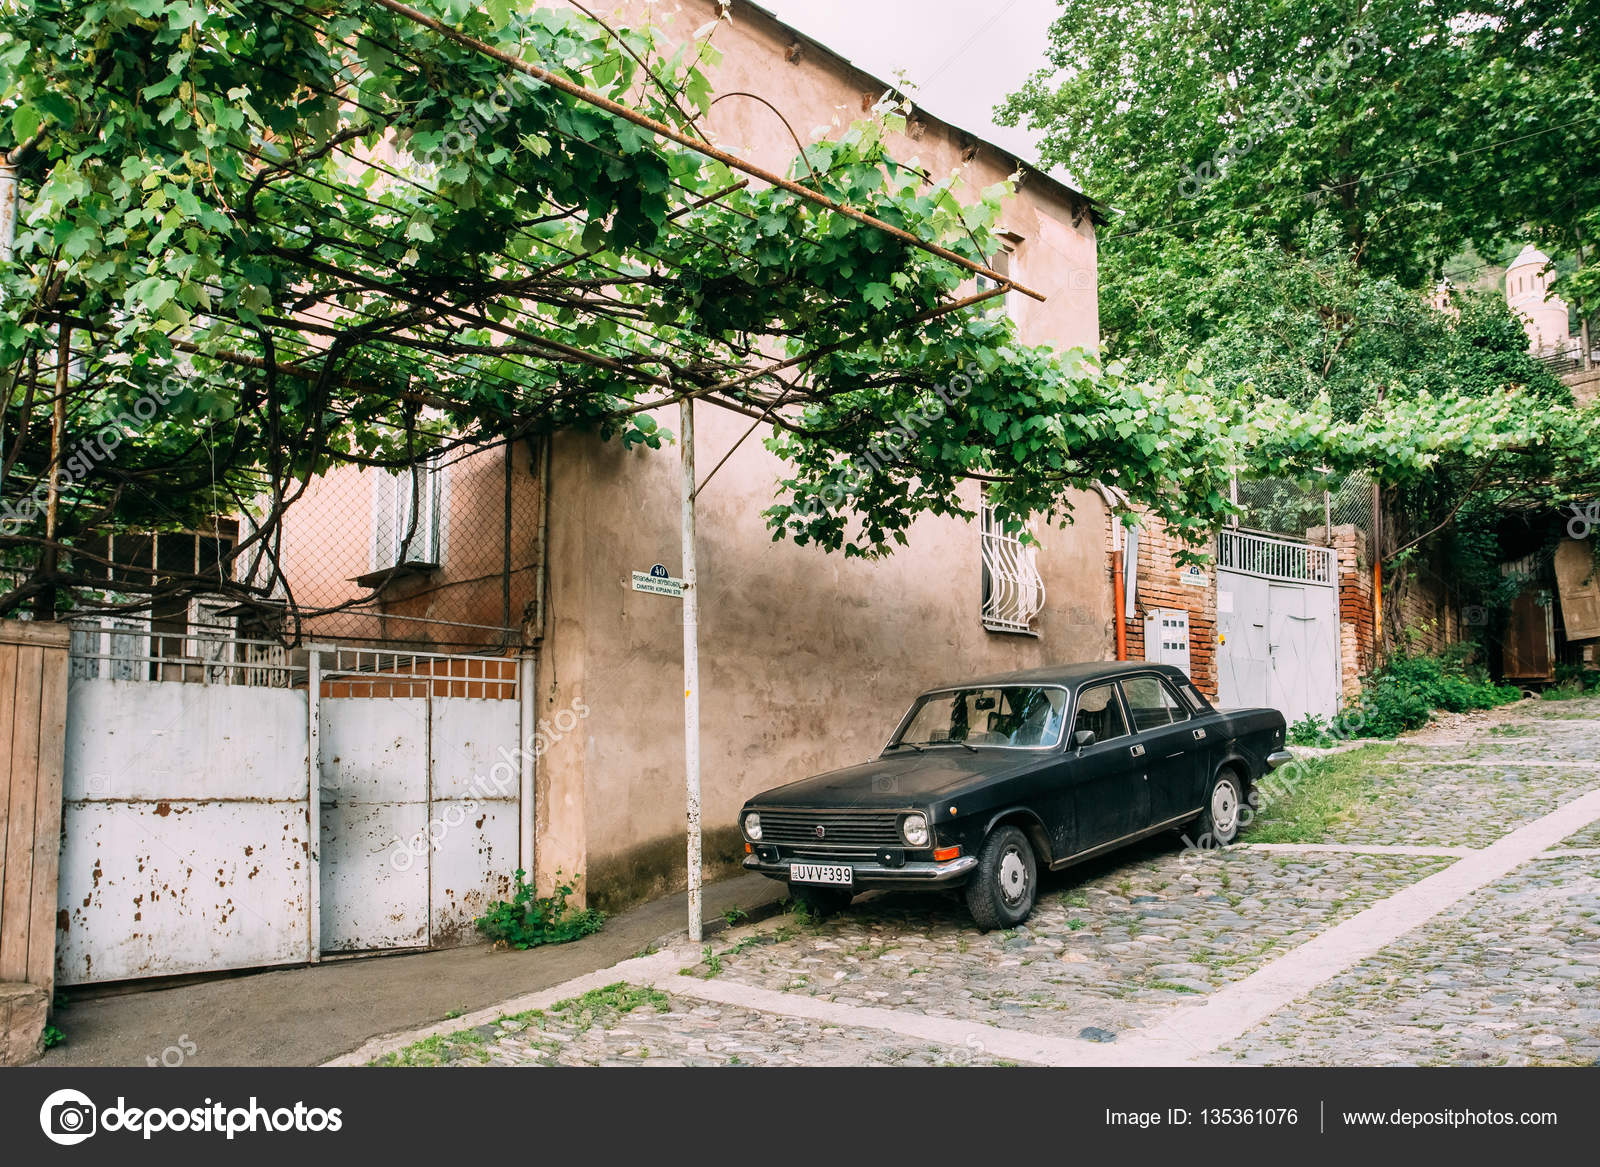 tbilisi georgia may 20 2016 the view of parked black volga gaz retro rarity car near the private residential house under vine canopy on cobbled green - Green Canopy 2016